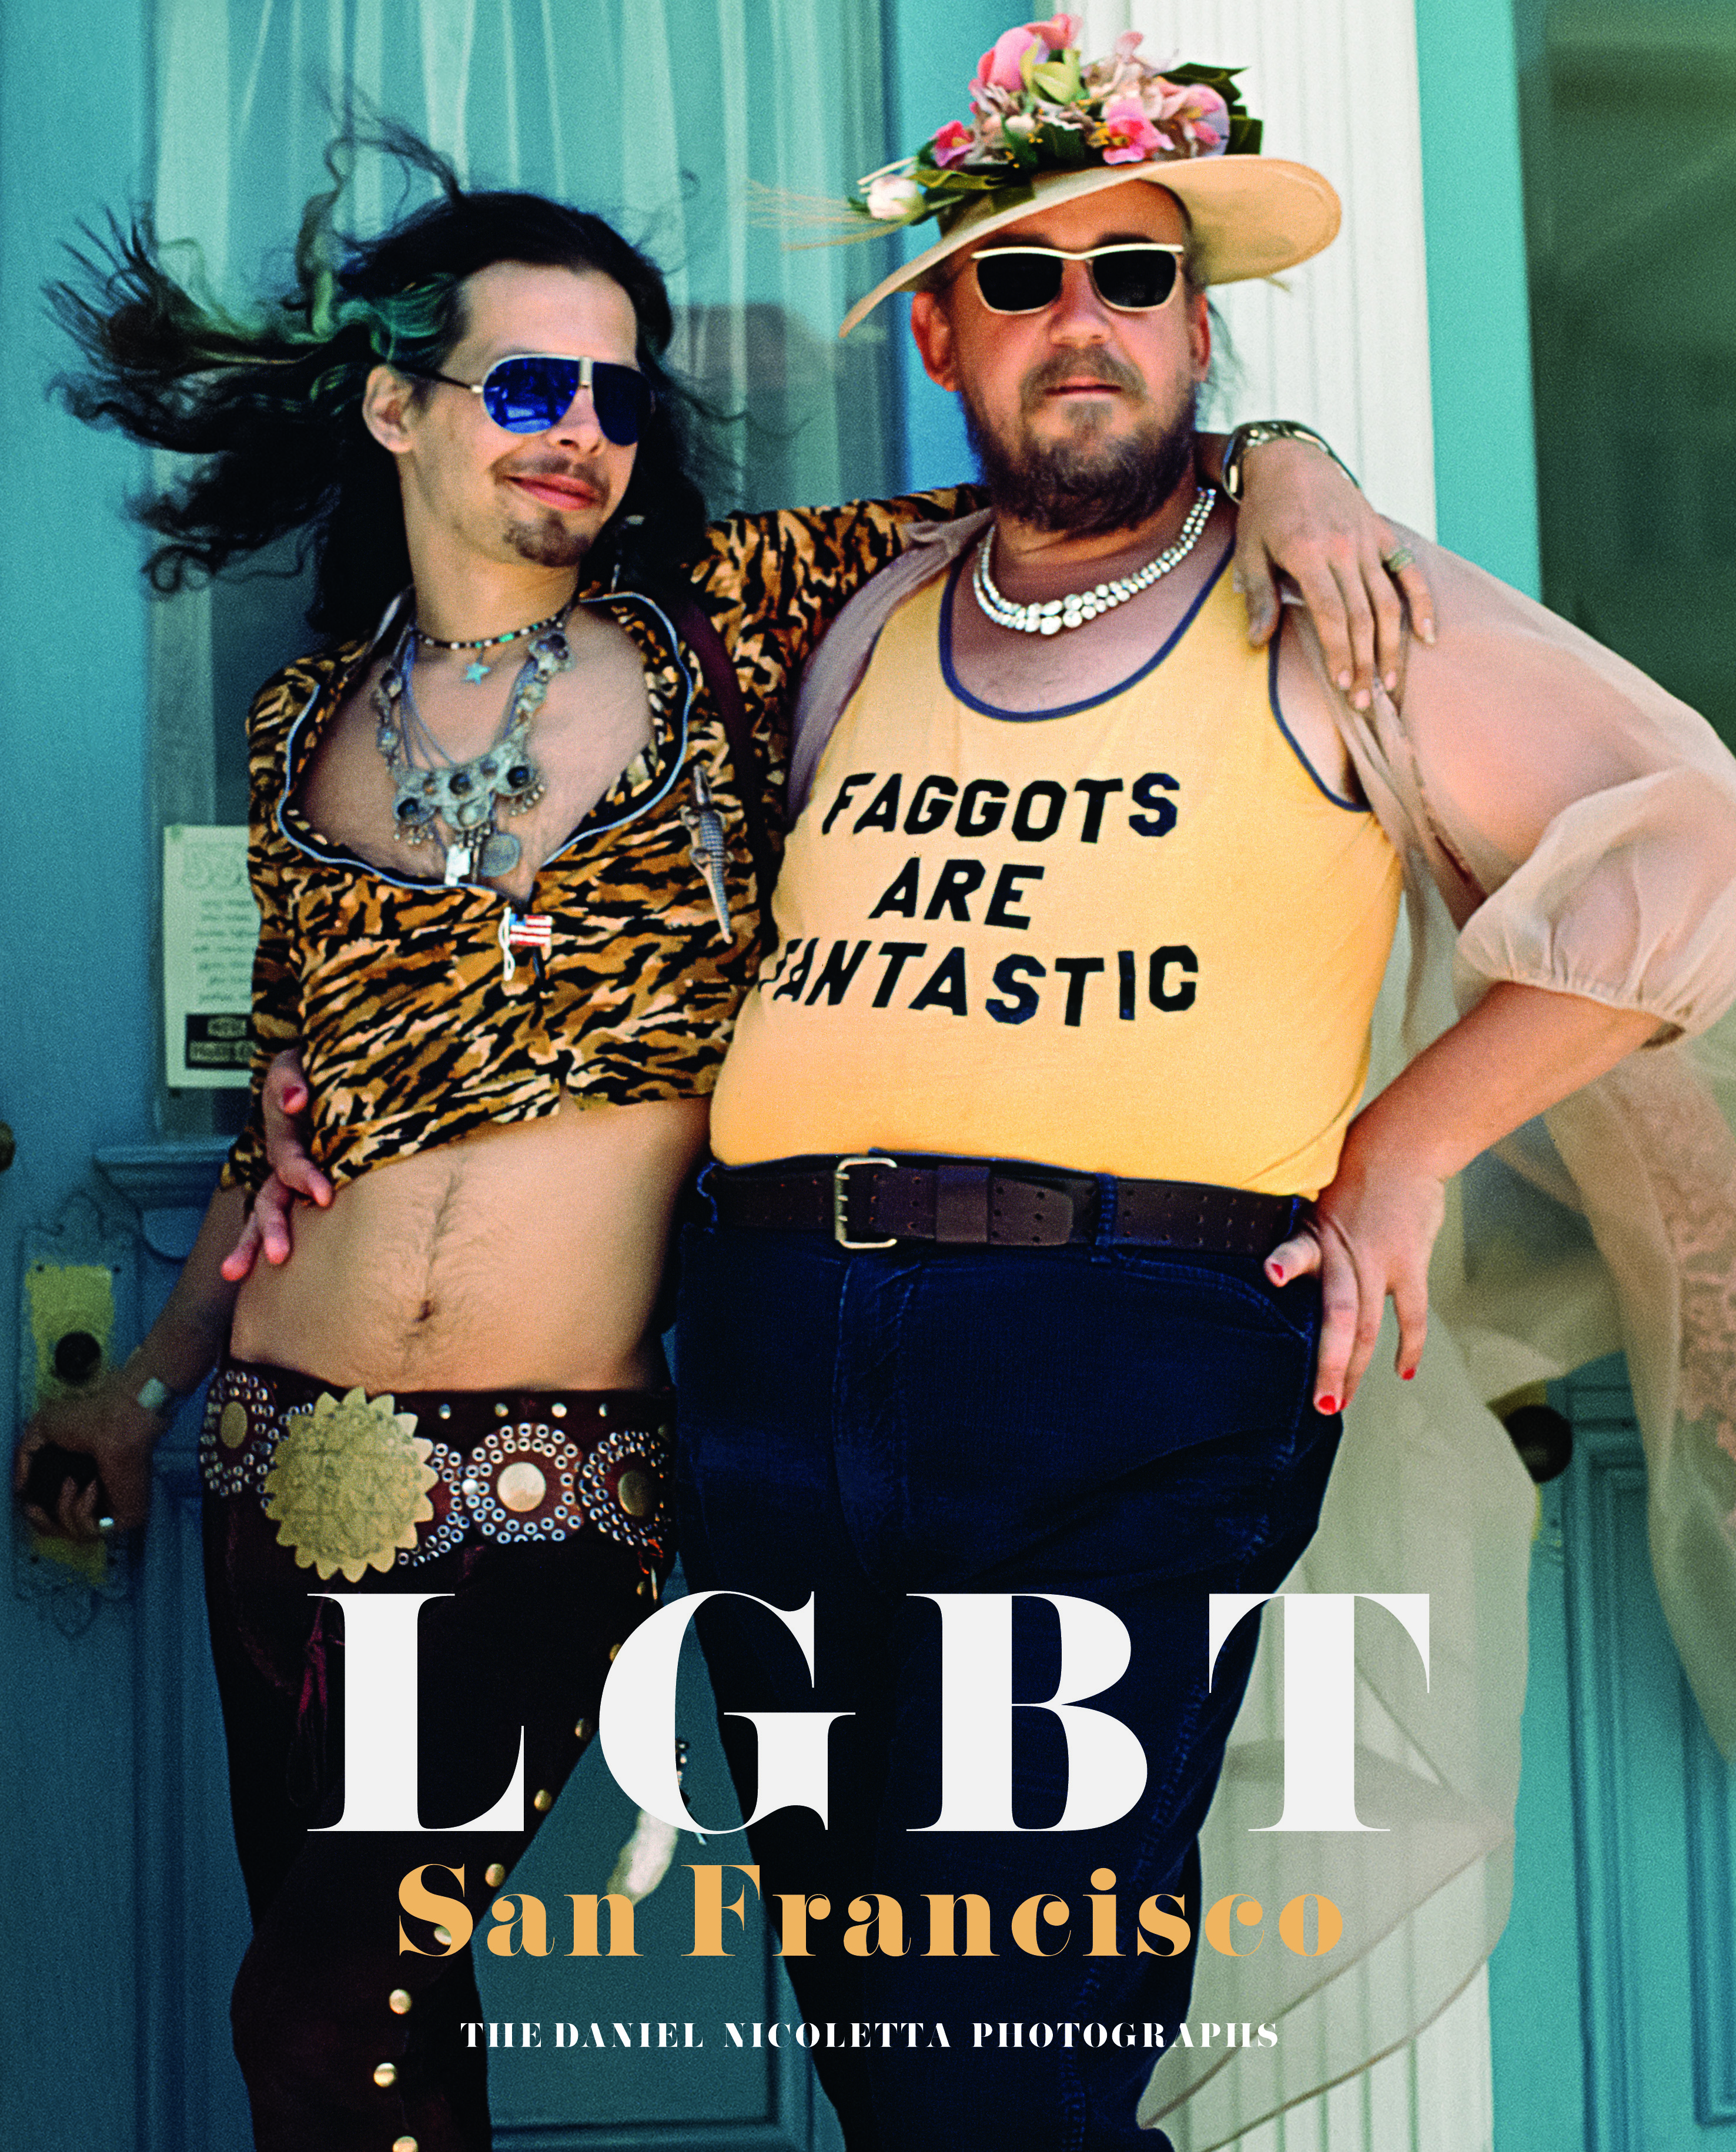 Historical Pictures of LGBT Movements in San Francisco by Daniel Nicoletta